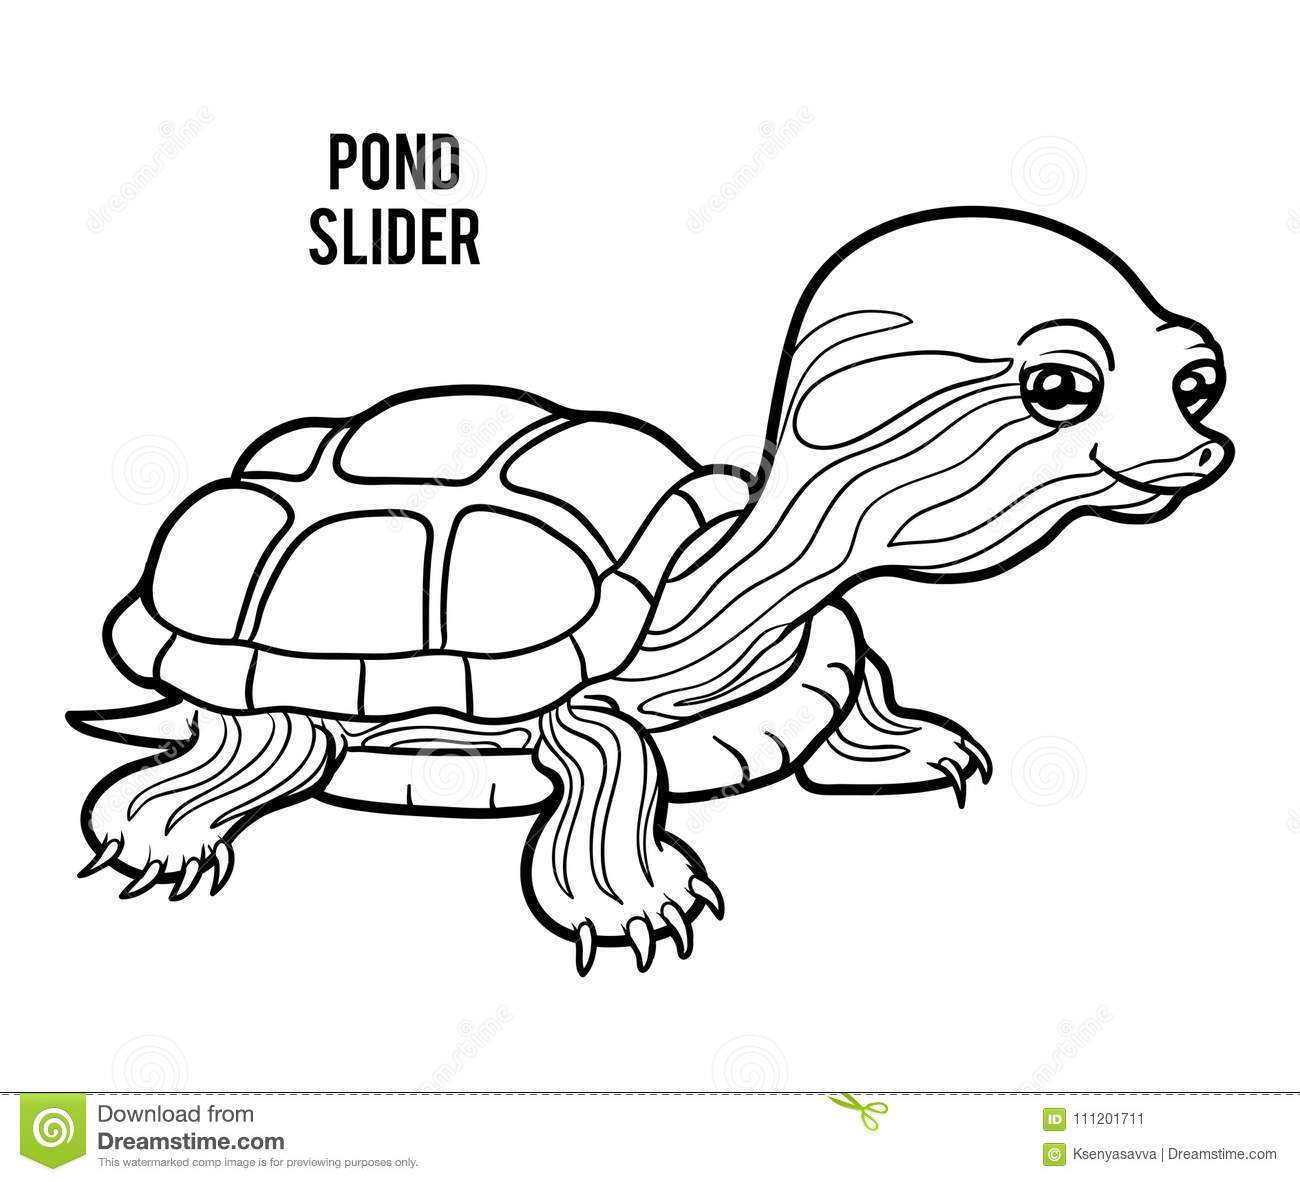 Coloring book, Pond slider stock vector. Illustration of